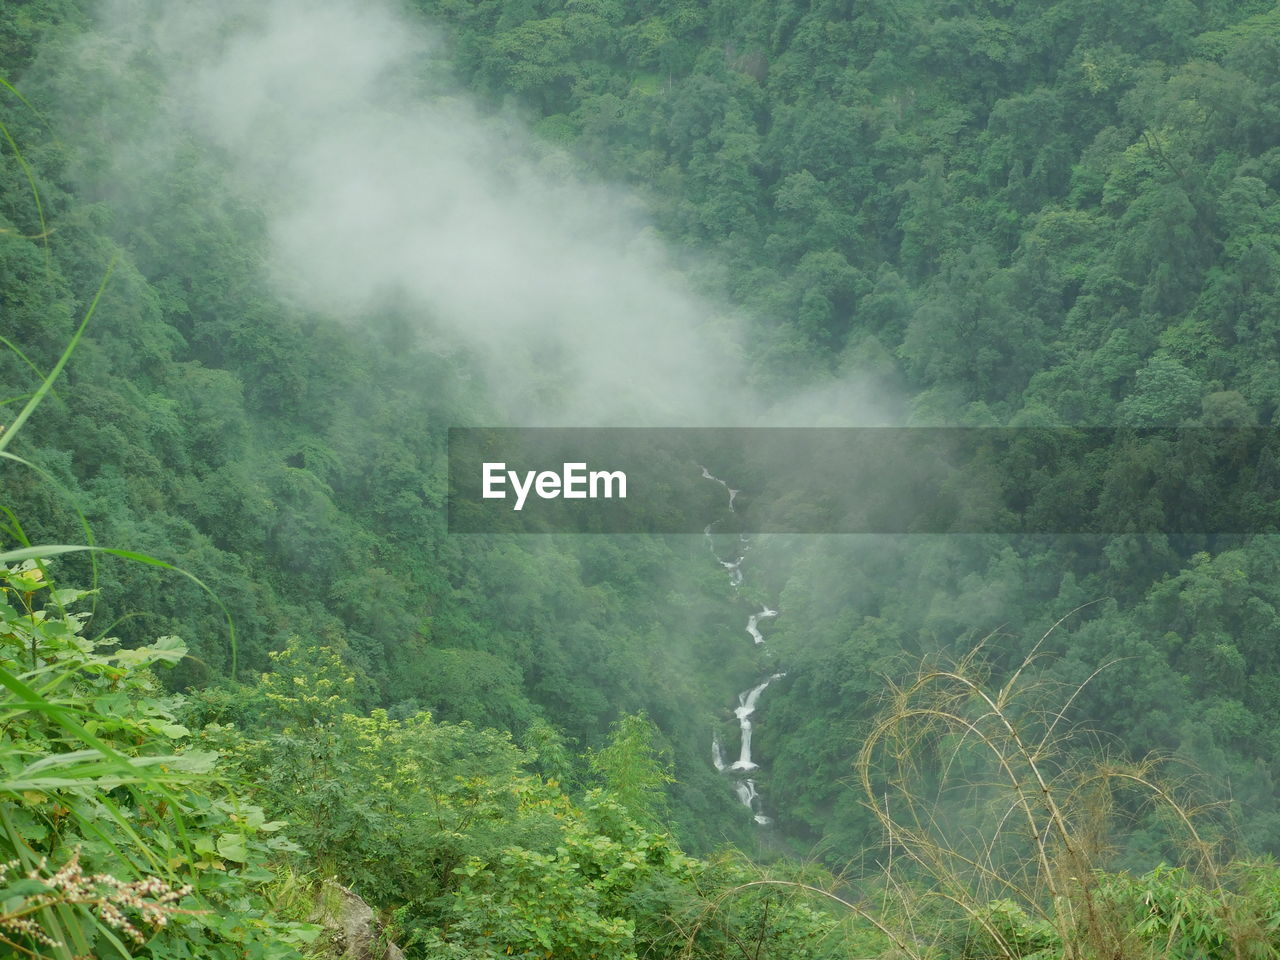 plant, tree, land, scenics - nature, beauty in nature, nature, no people, forest, green color, environment, fog, growth, mountain, tranquility, tranquil scene, day, non-urban scene, outdoors, lush foliage, rainforest